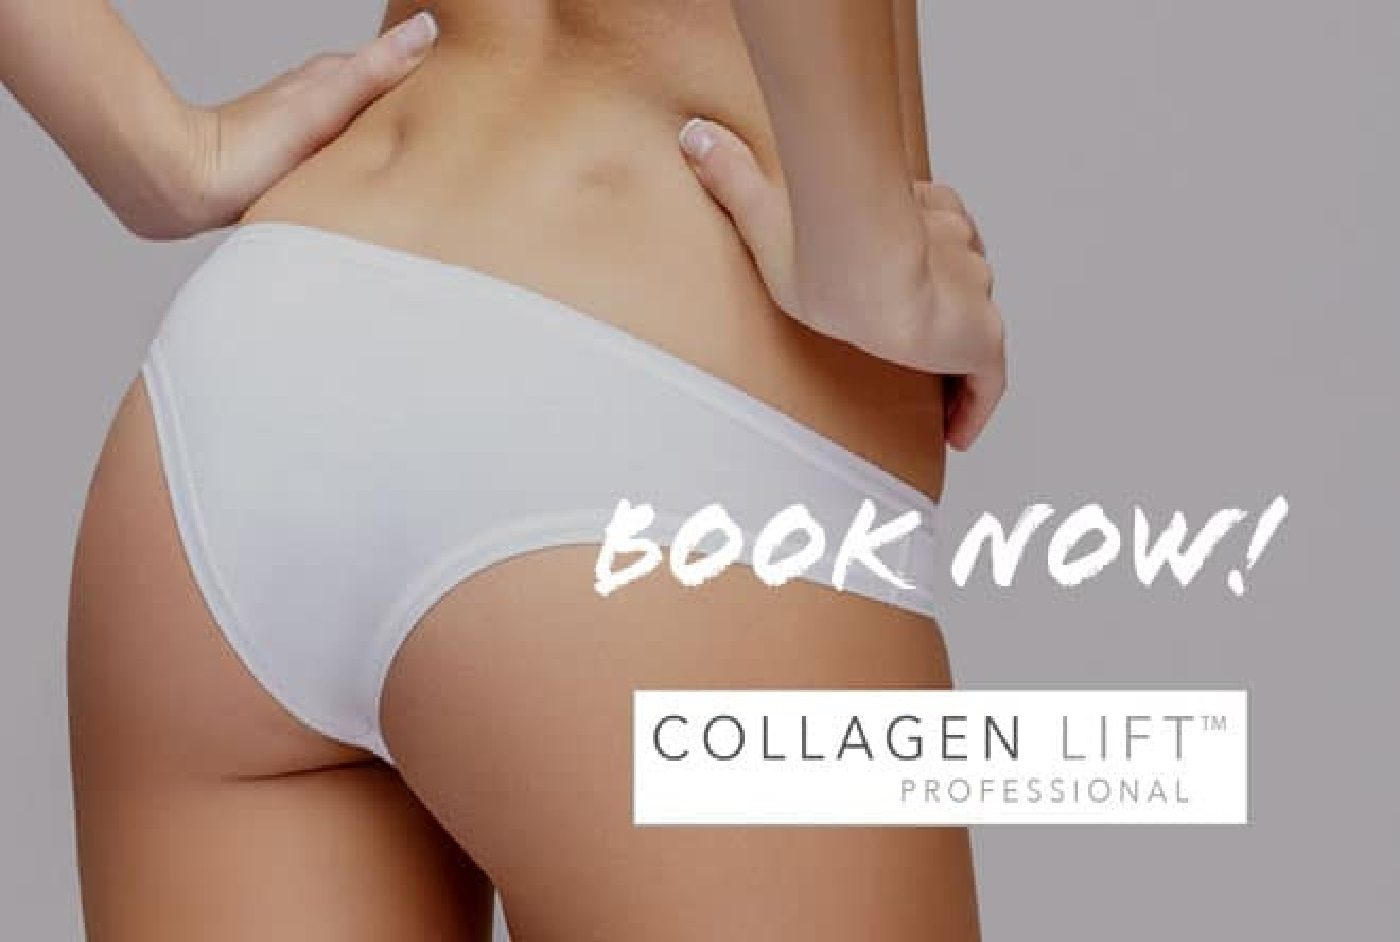 Collagen Lift promotional day is fast approaching – Book now!